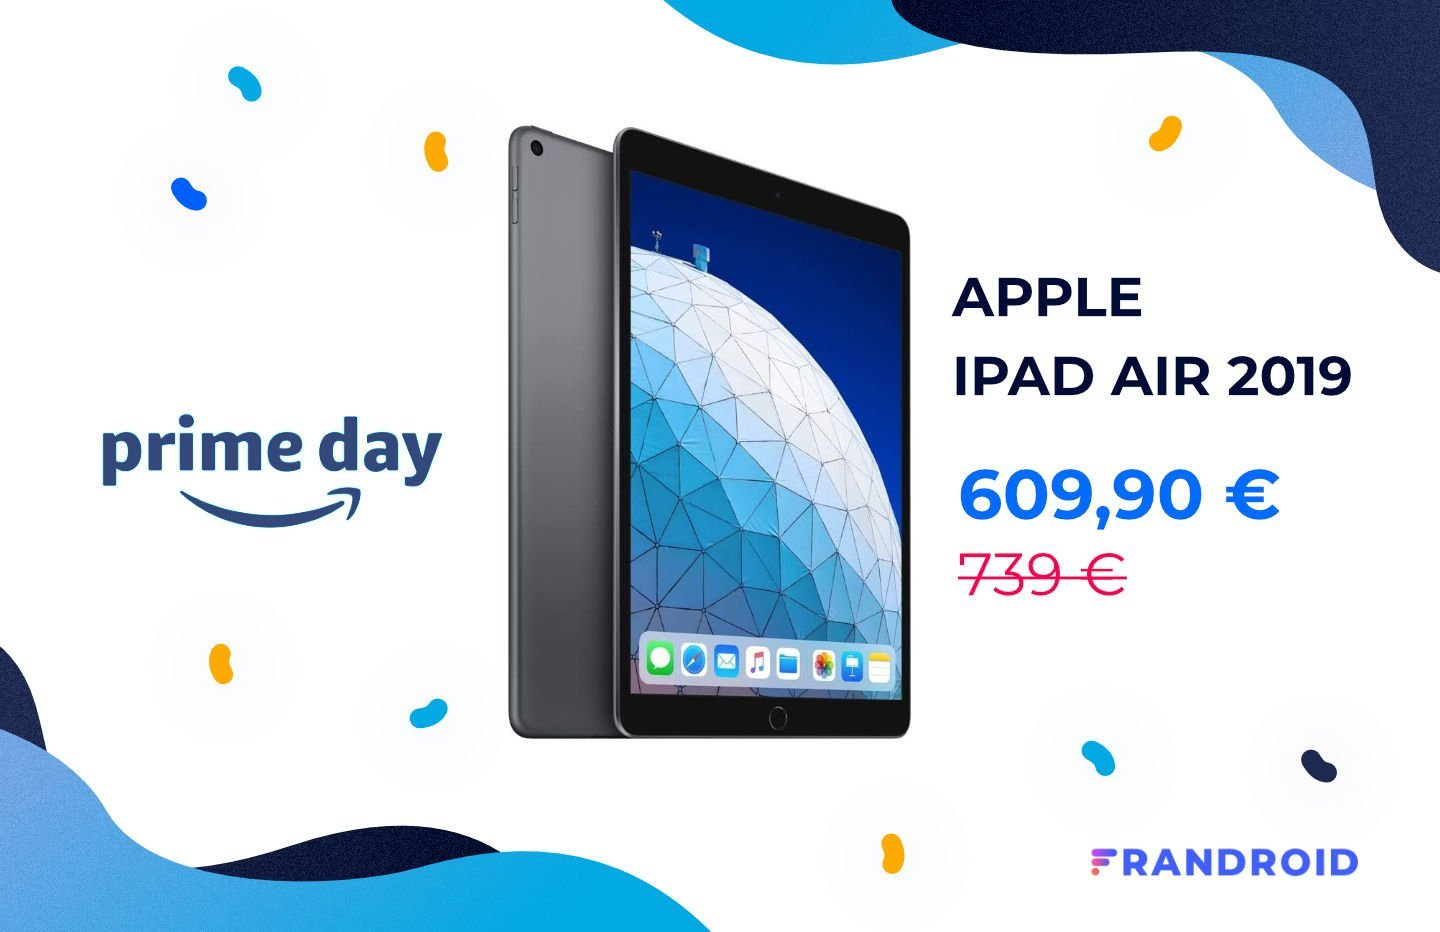 Plus de 100 € de réduction pour la version 256 Go de l'iPad Air 2019